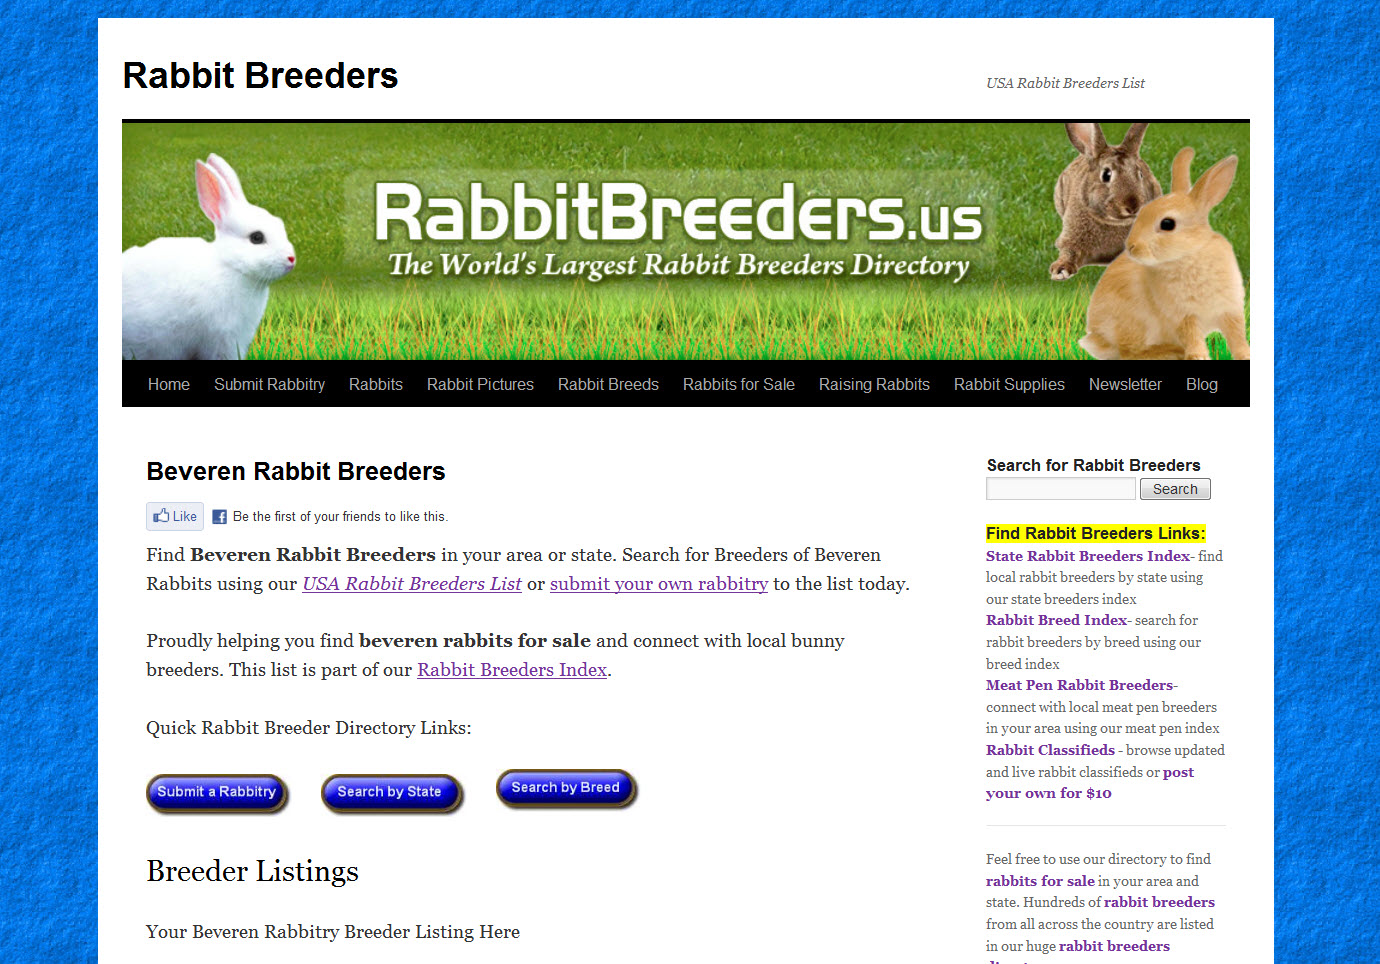 Beveren Rabbits for Sale